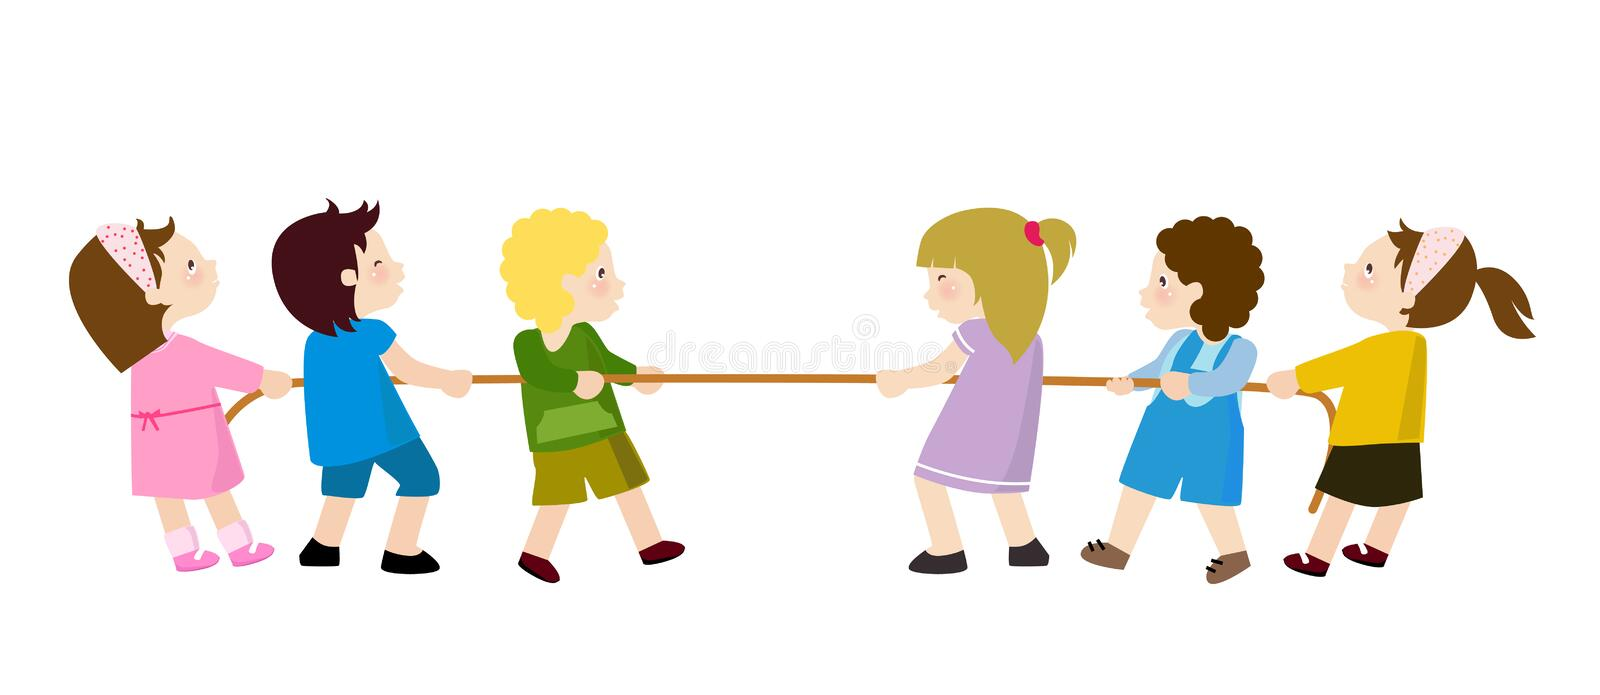 kids playing tug of war stock vector illustration of leisure rh dreamstime com tug a war clipart tug of war rope clipart